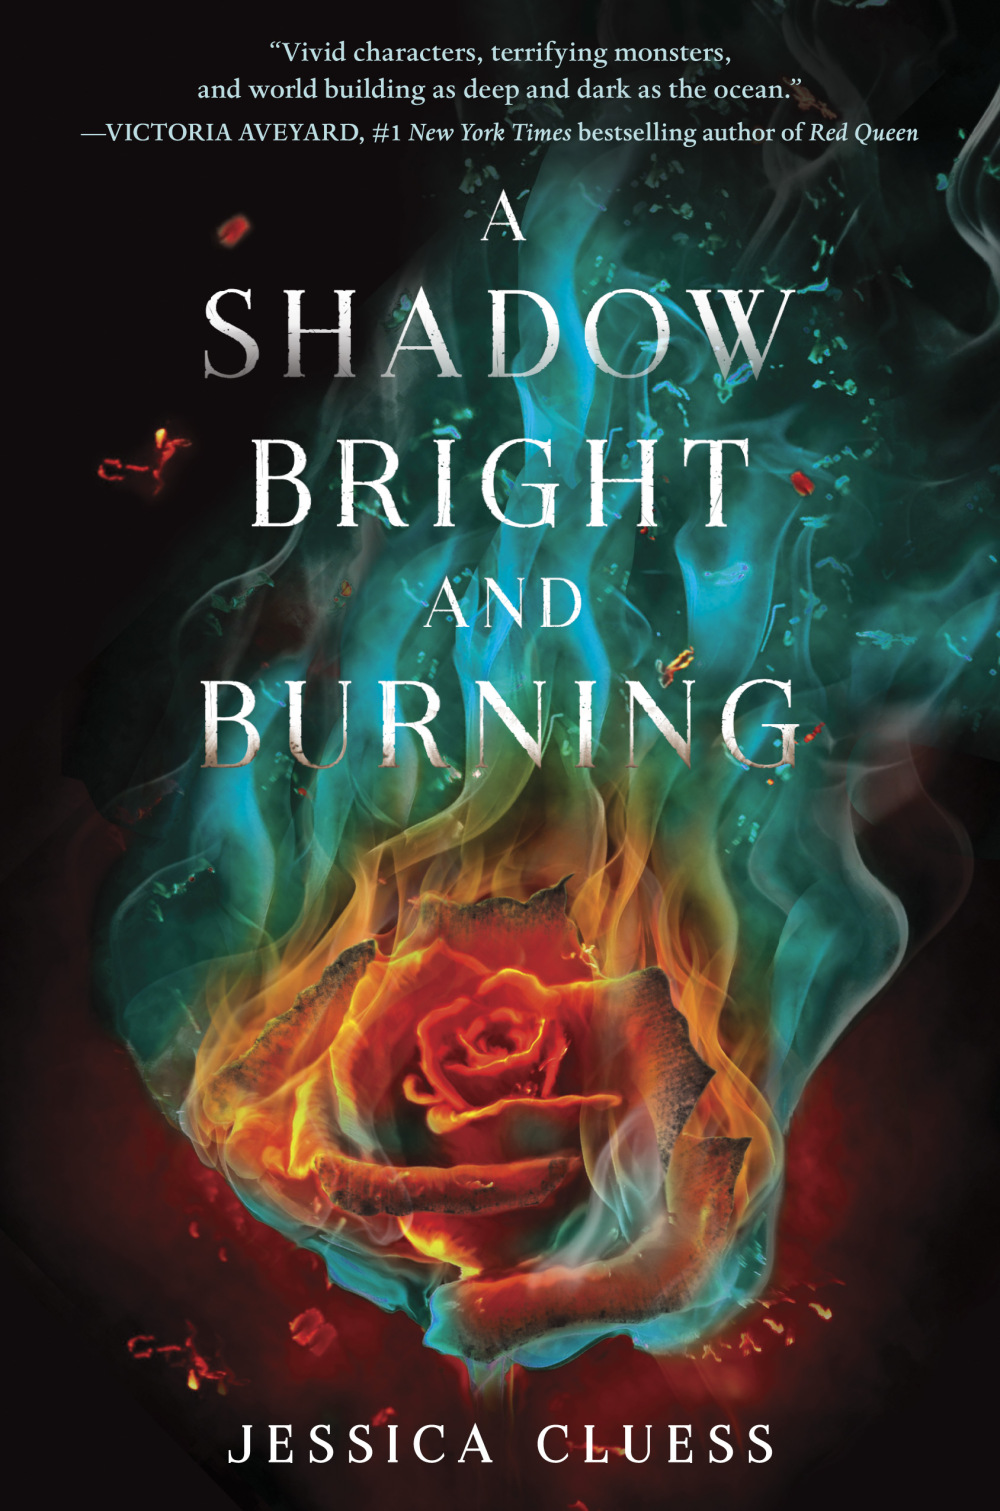 Review – A Shadow Bright and Burning by Jessica Cluess